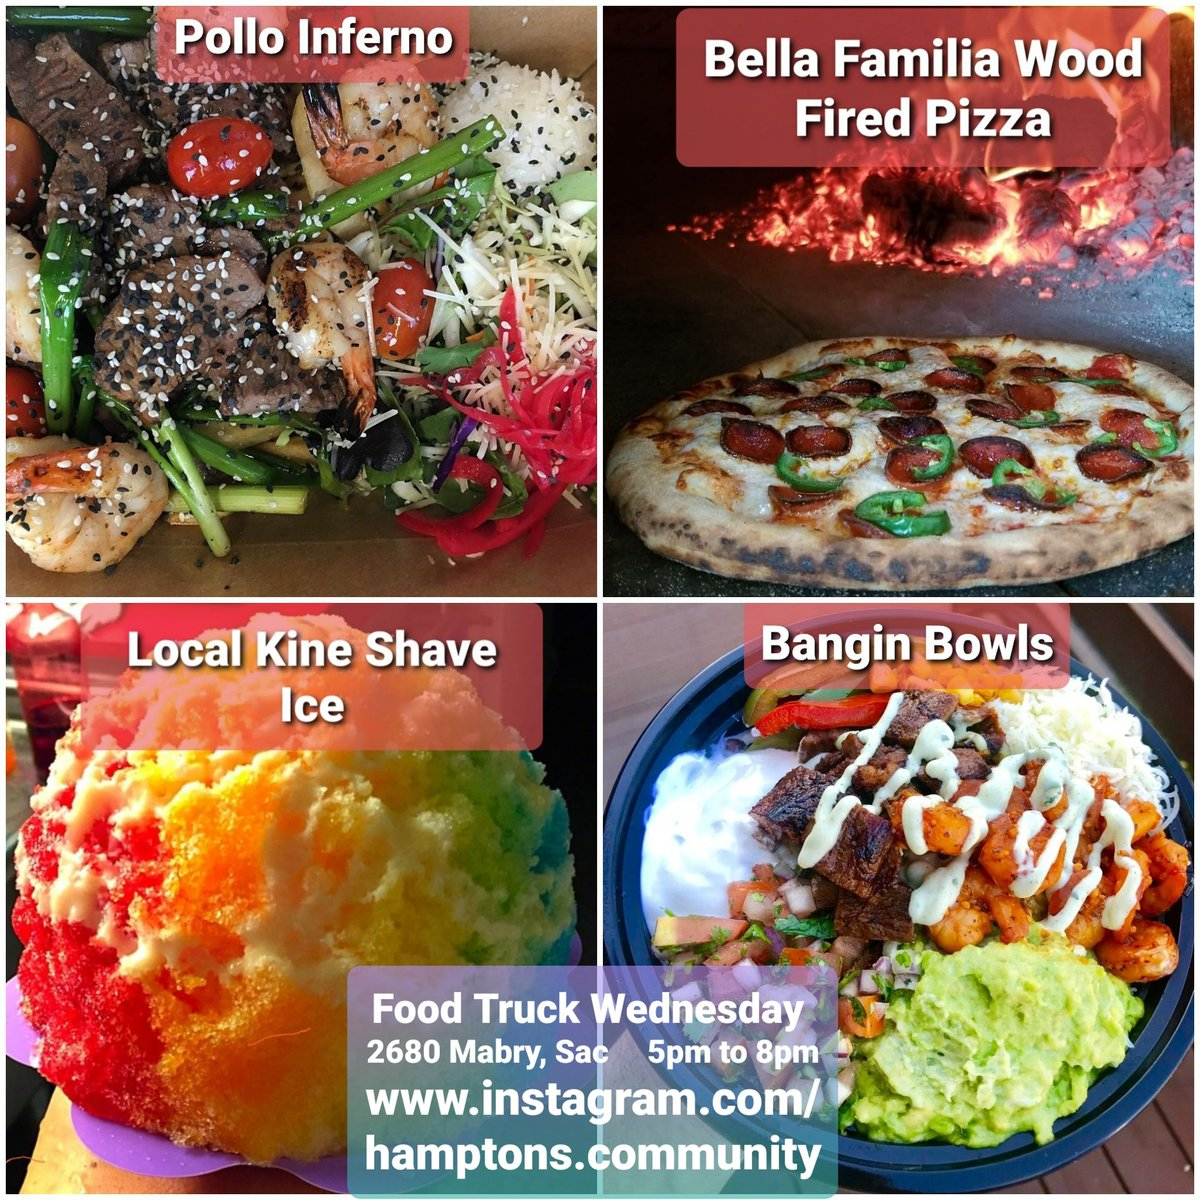 FOOD TRUCK WEDNESDAY   Bangin Bowls https://t.co/p9Z4qw8w2G  Bella Familia Wood Fired Pizza https://t.co/Jb2apxDvwn  Local Kine Shave Ice1 https://t.co/gi0v3M4pvX  Pollo Inferno https://t.co/miEwwh8hKO https://t.co/B1Ckfm4529